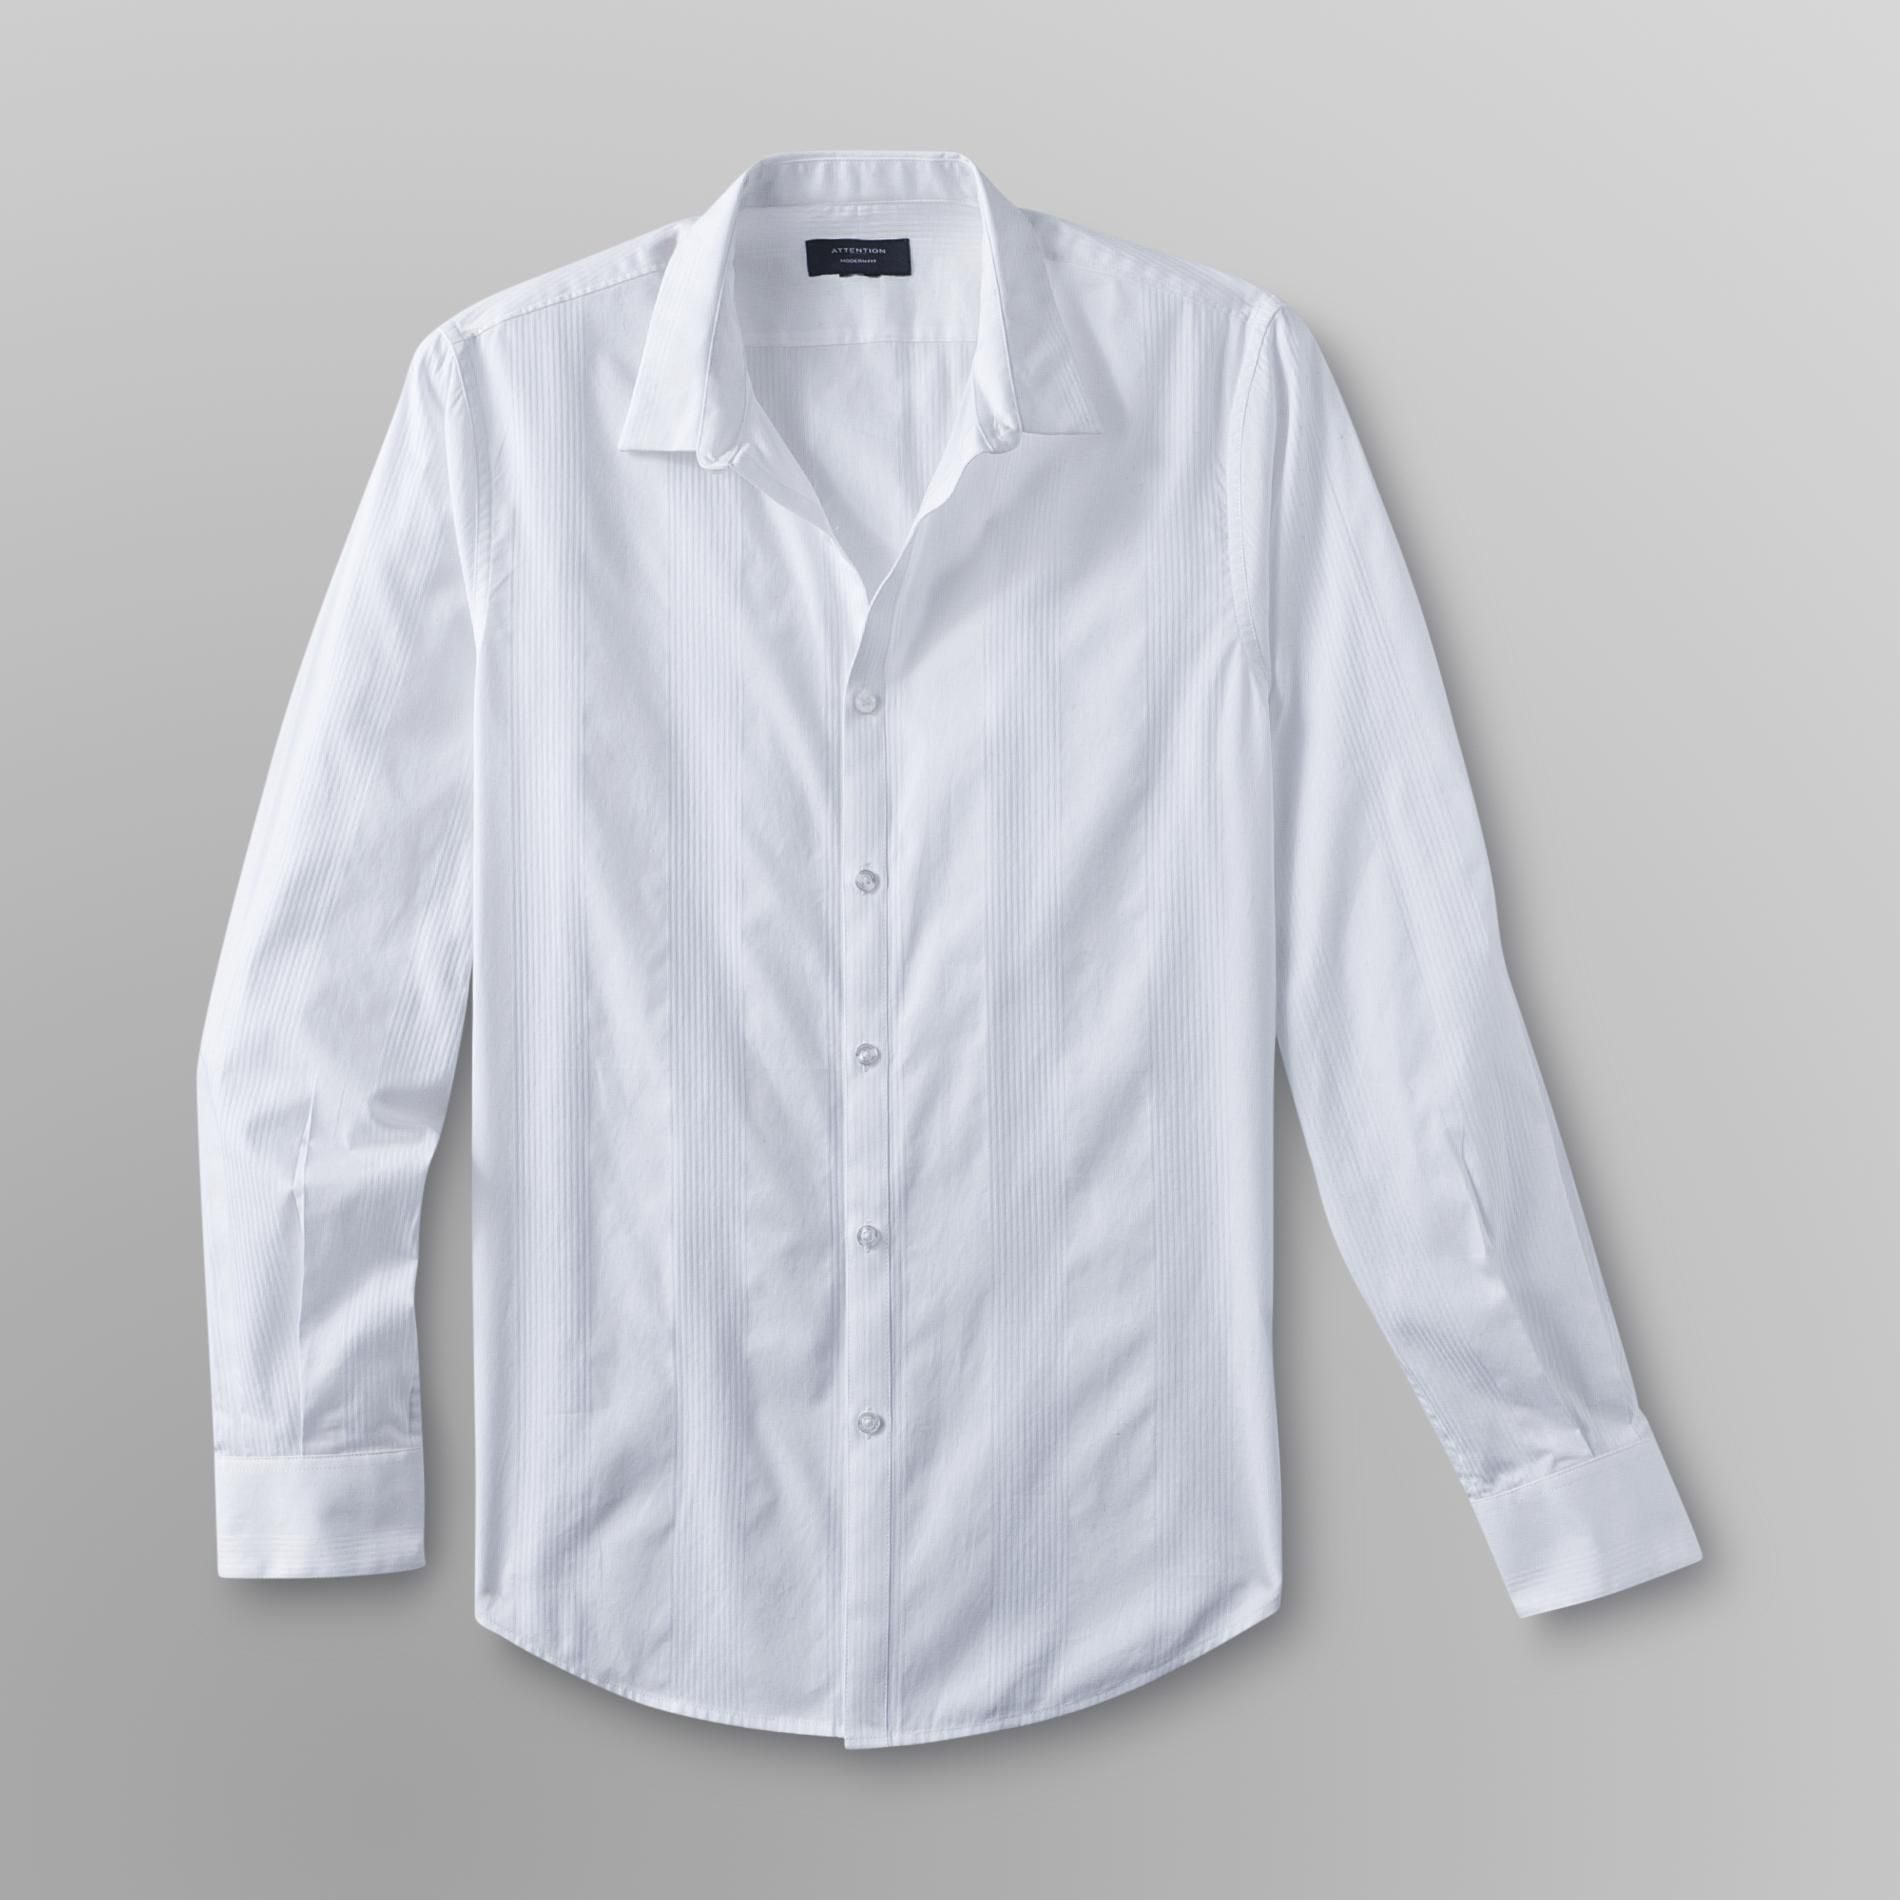 Attention Men's Big & Tall Modern Fit Dress Shirt at Kmart.com